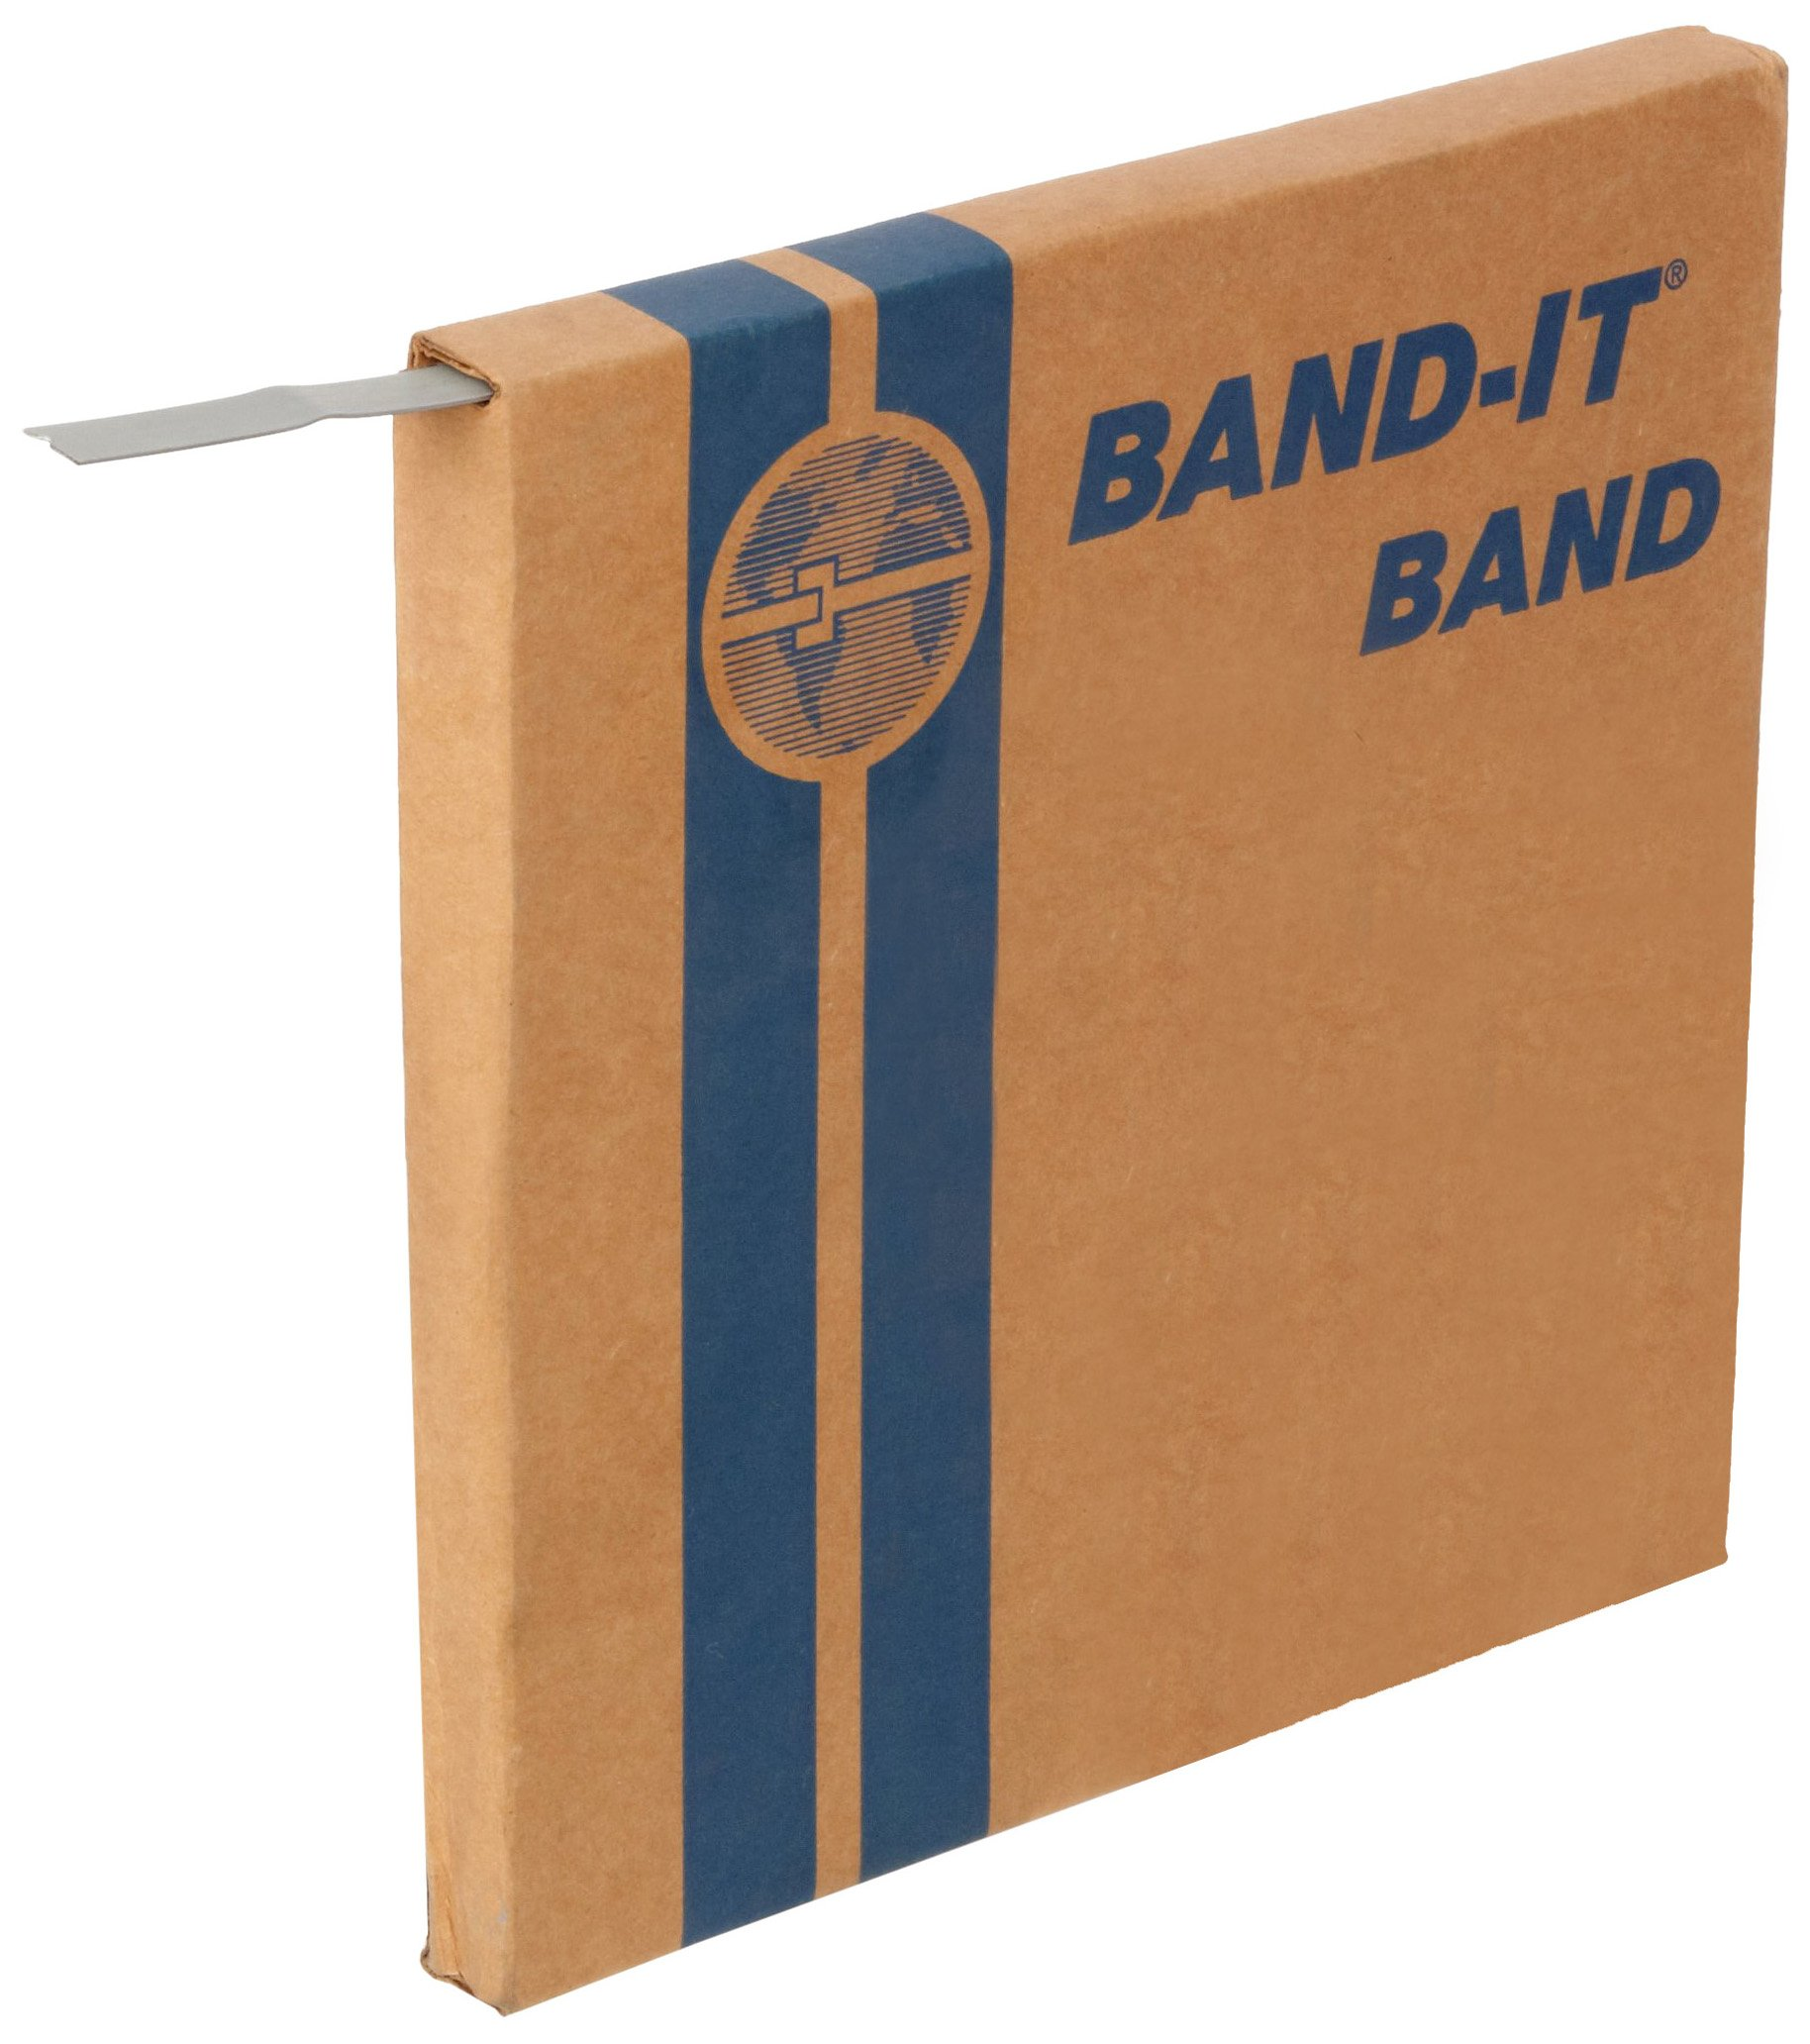 BAND-IT C20399 201 Stainless Steel Bright Annealed Finish Band, 3/8'' Width X 0.025'' Thick, 100 Feet Roll by Band-It